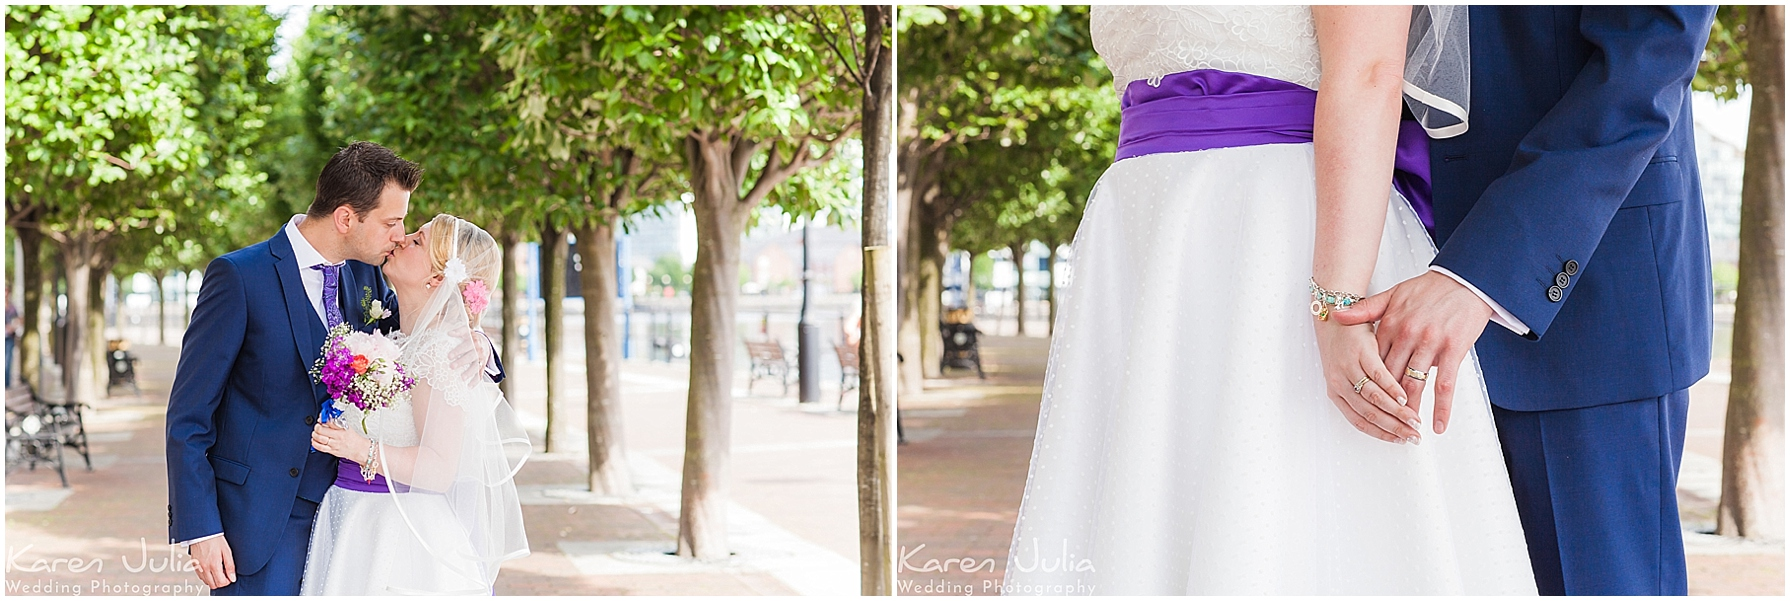 bride and groom wedding portraits in salford quays